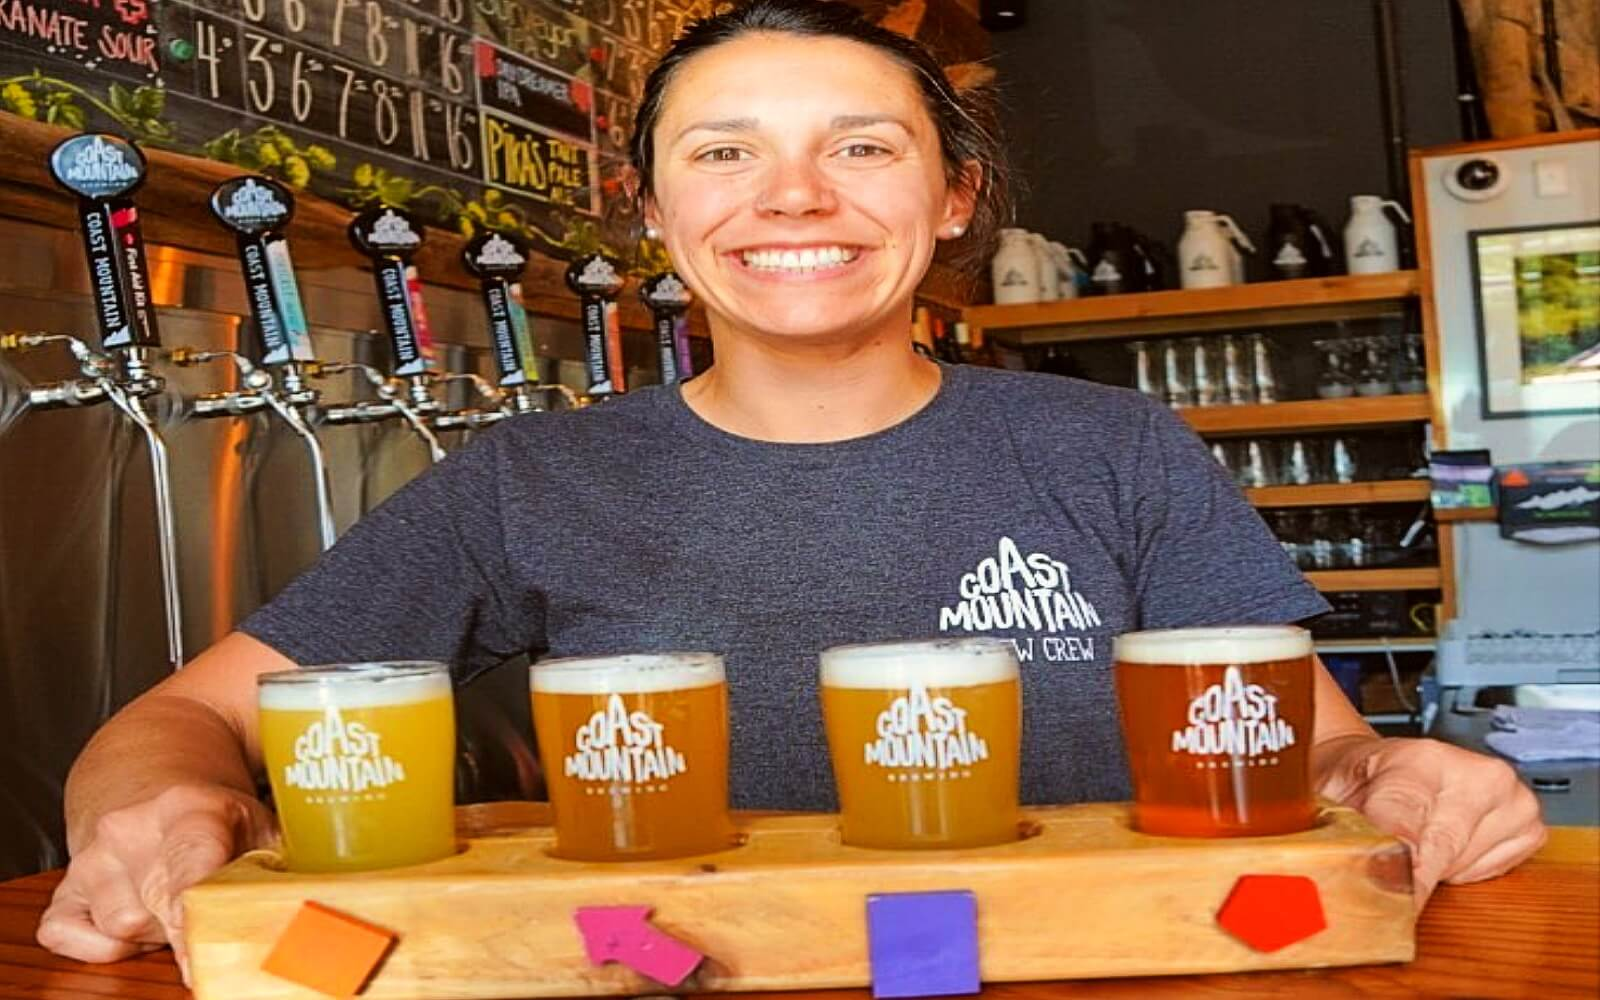 A bartender serves a flight of Coast Mountain beers